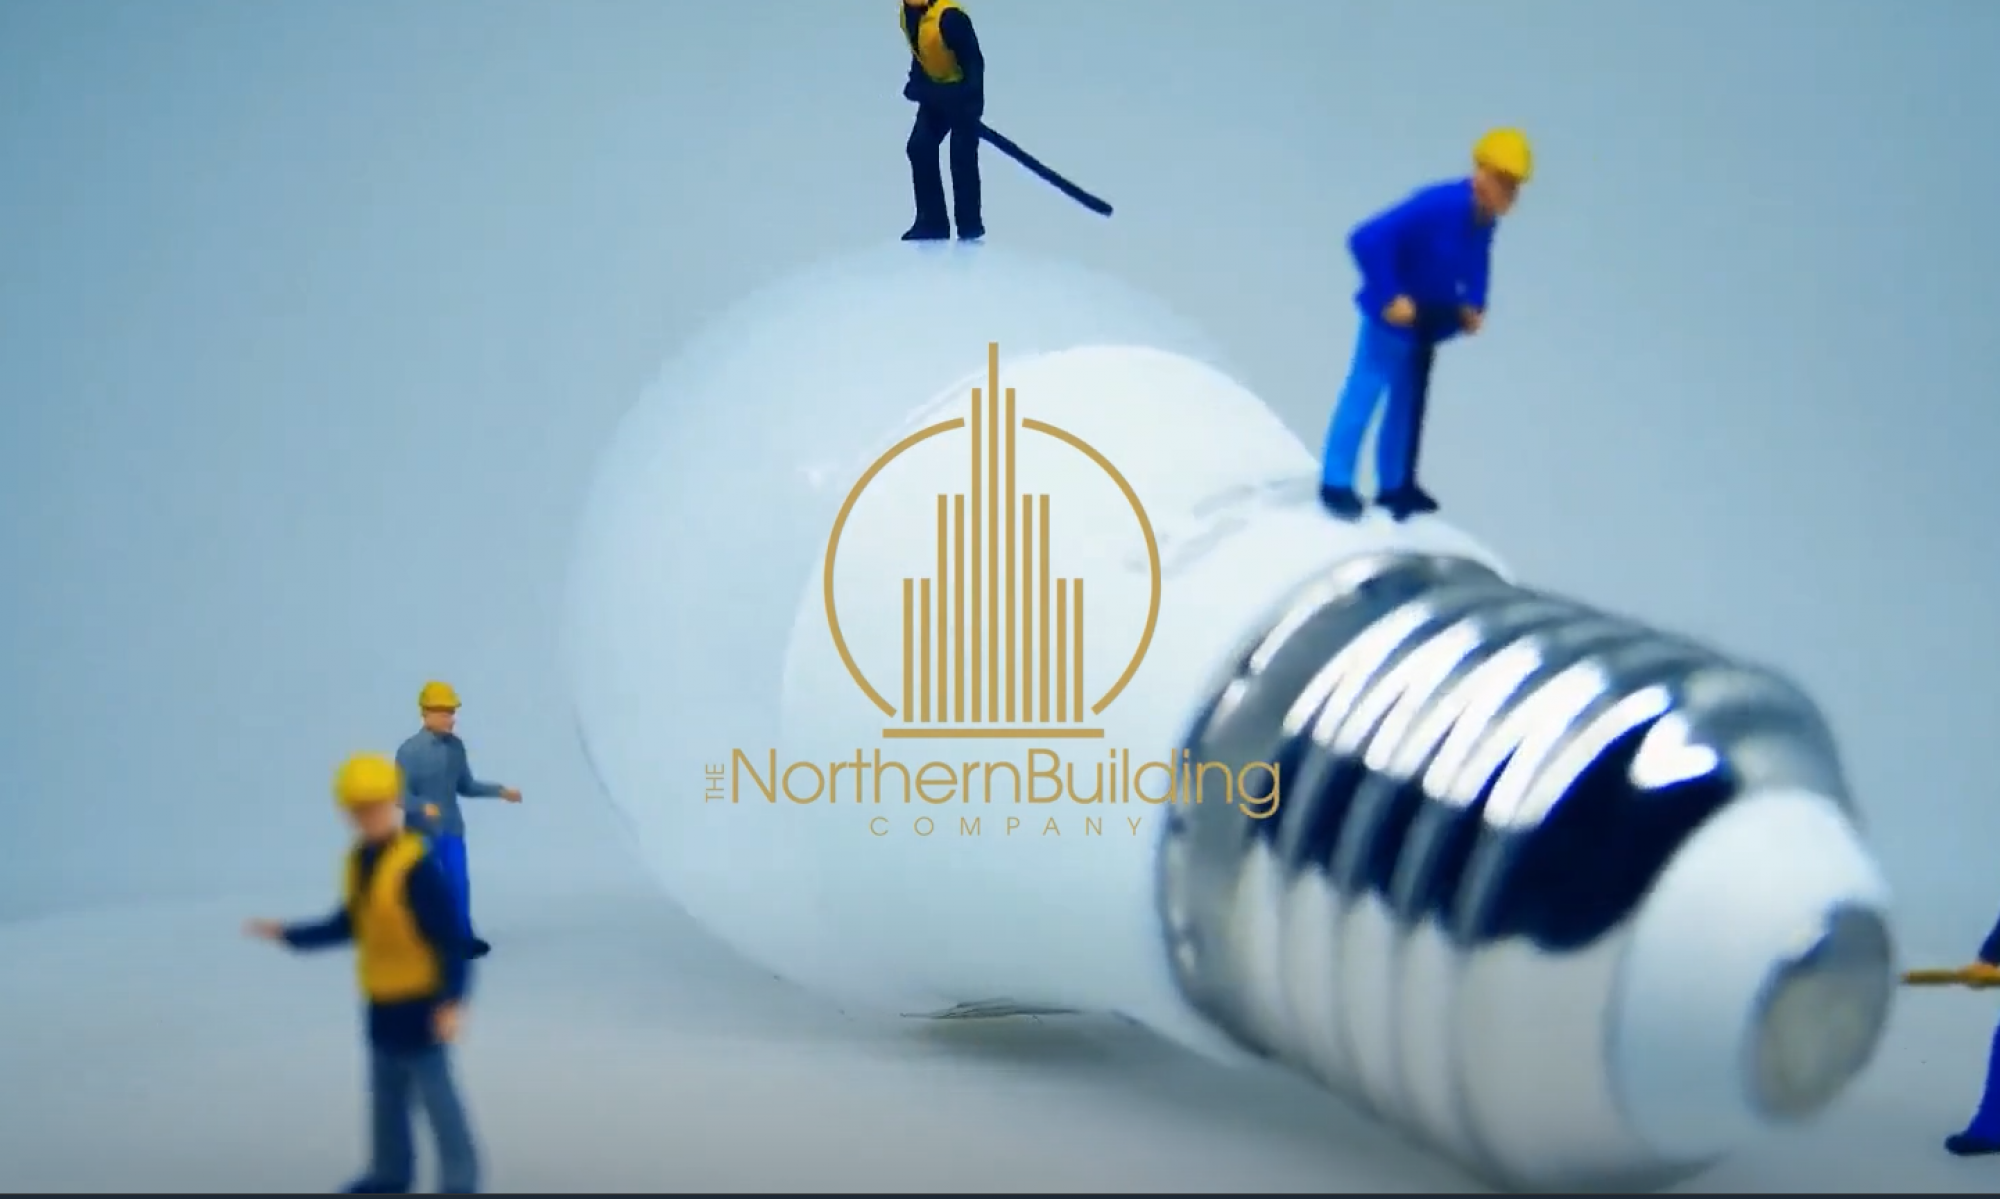 The Northern Building Company